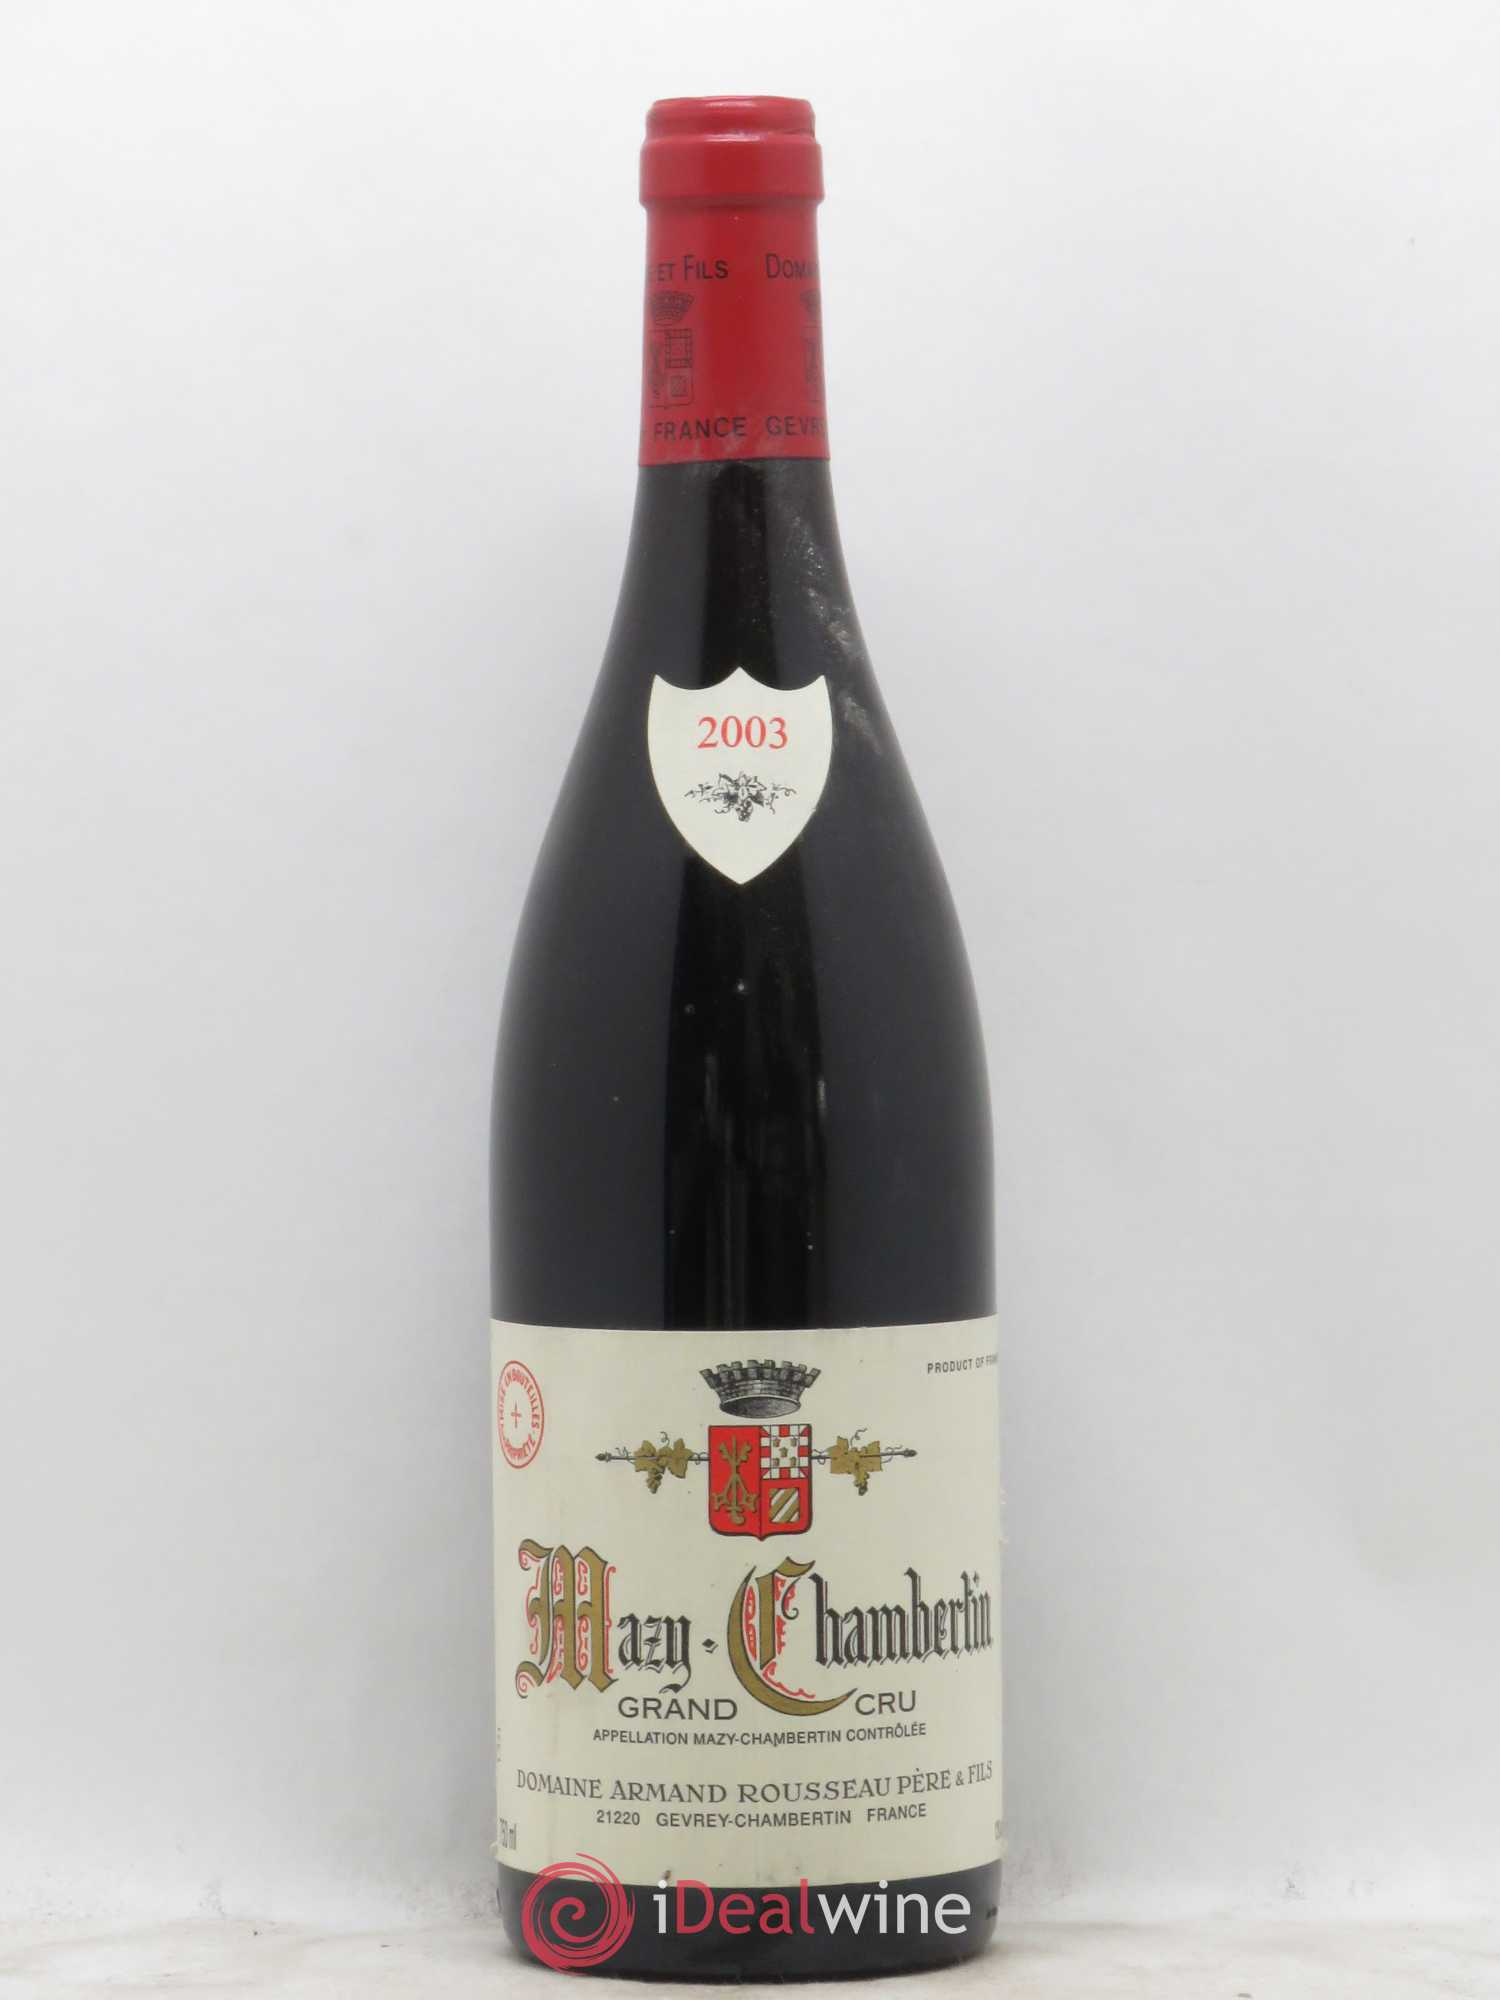 Mazy-Chambertin Grand Cru Armand Rousseau (Domaine)  2003 - Lot of 1 Bottle